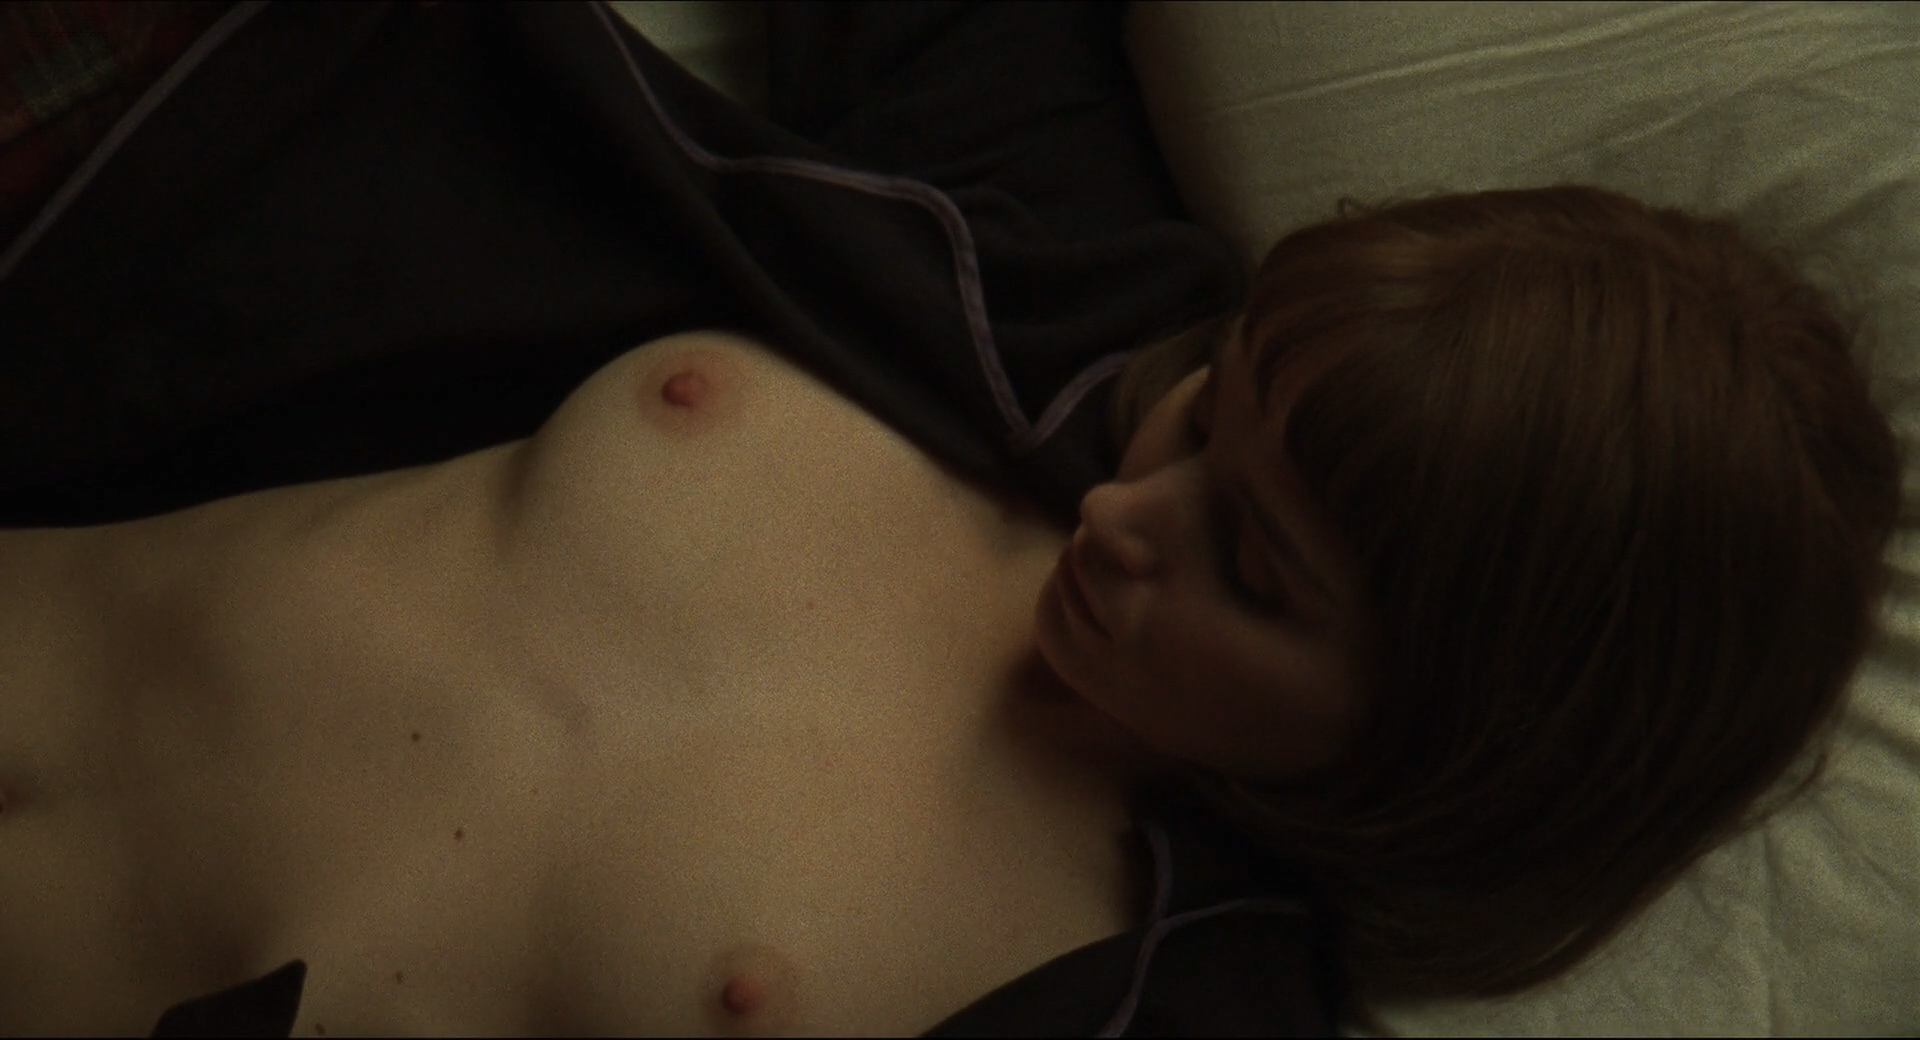 Cate Blanchett nude and Rooney Mara nude topless and lesbian sex - Carol (2015) HD 1080p BluRay (8)